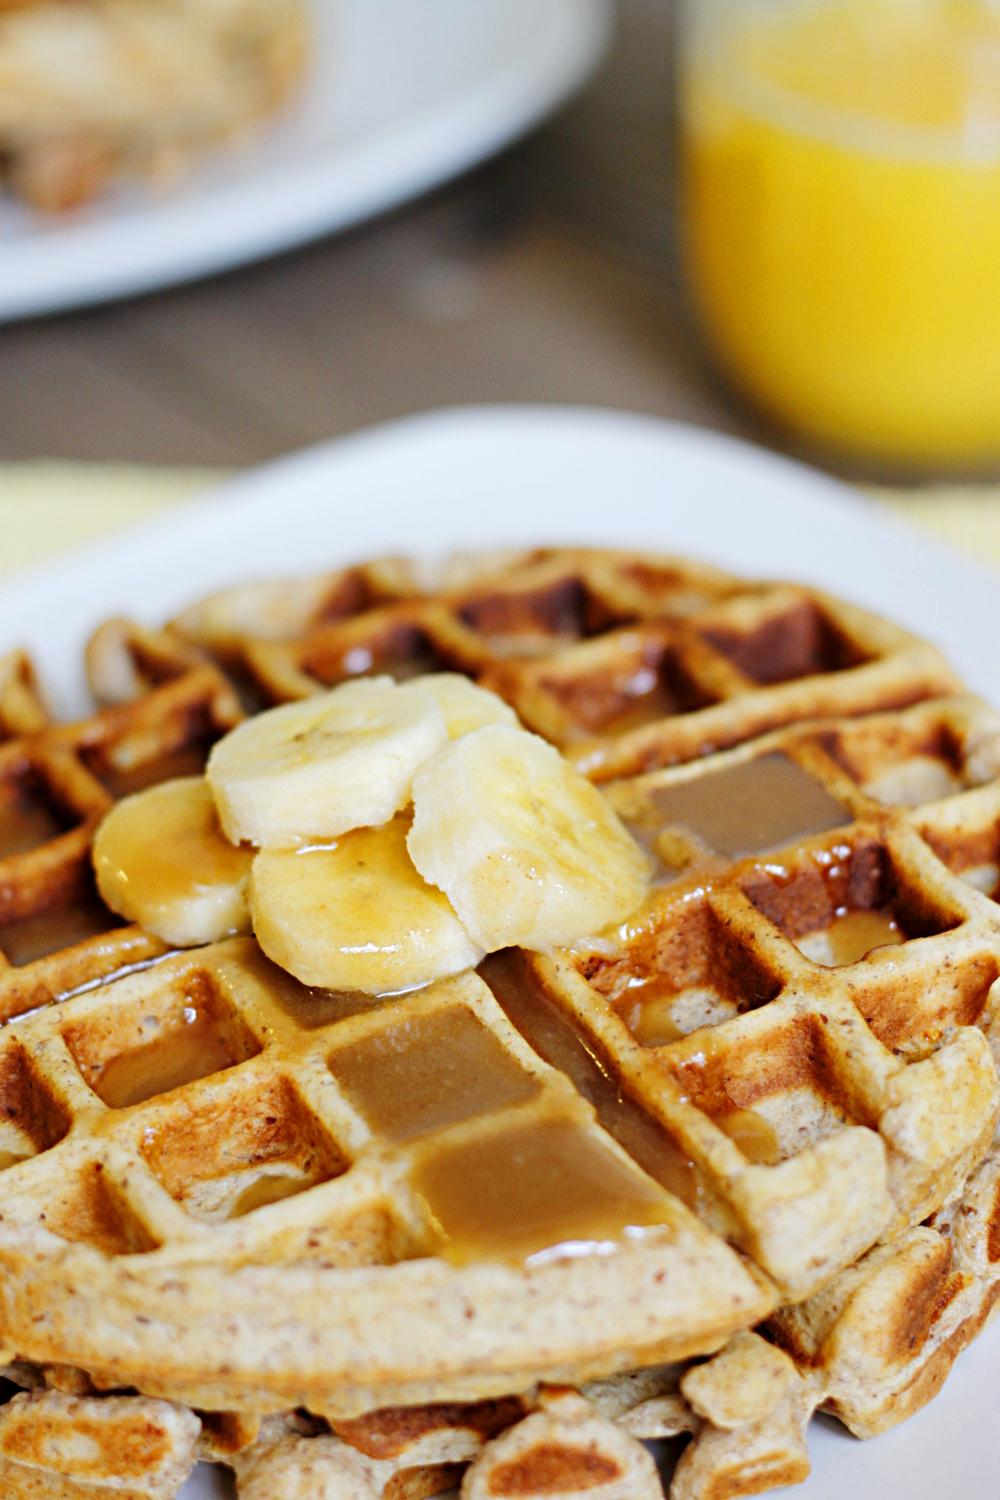 belle vie - Banana Waffles with Peanut Butter Maple Syrup ...